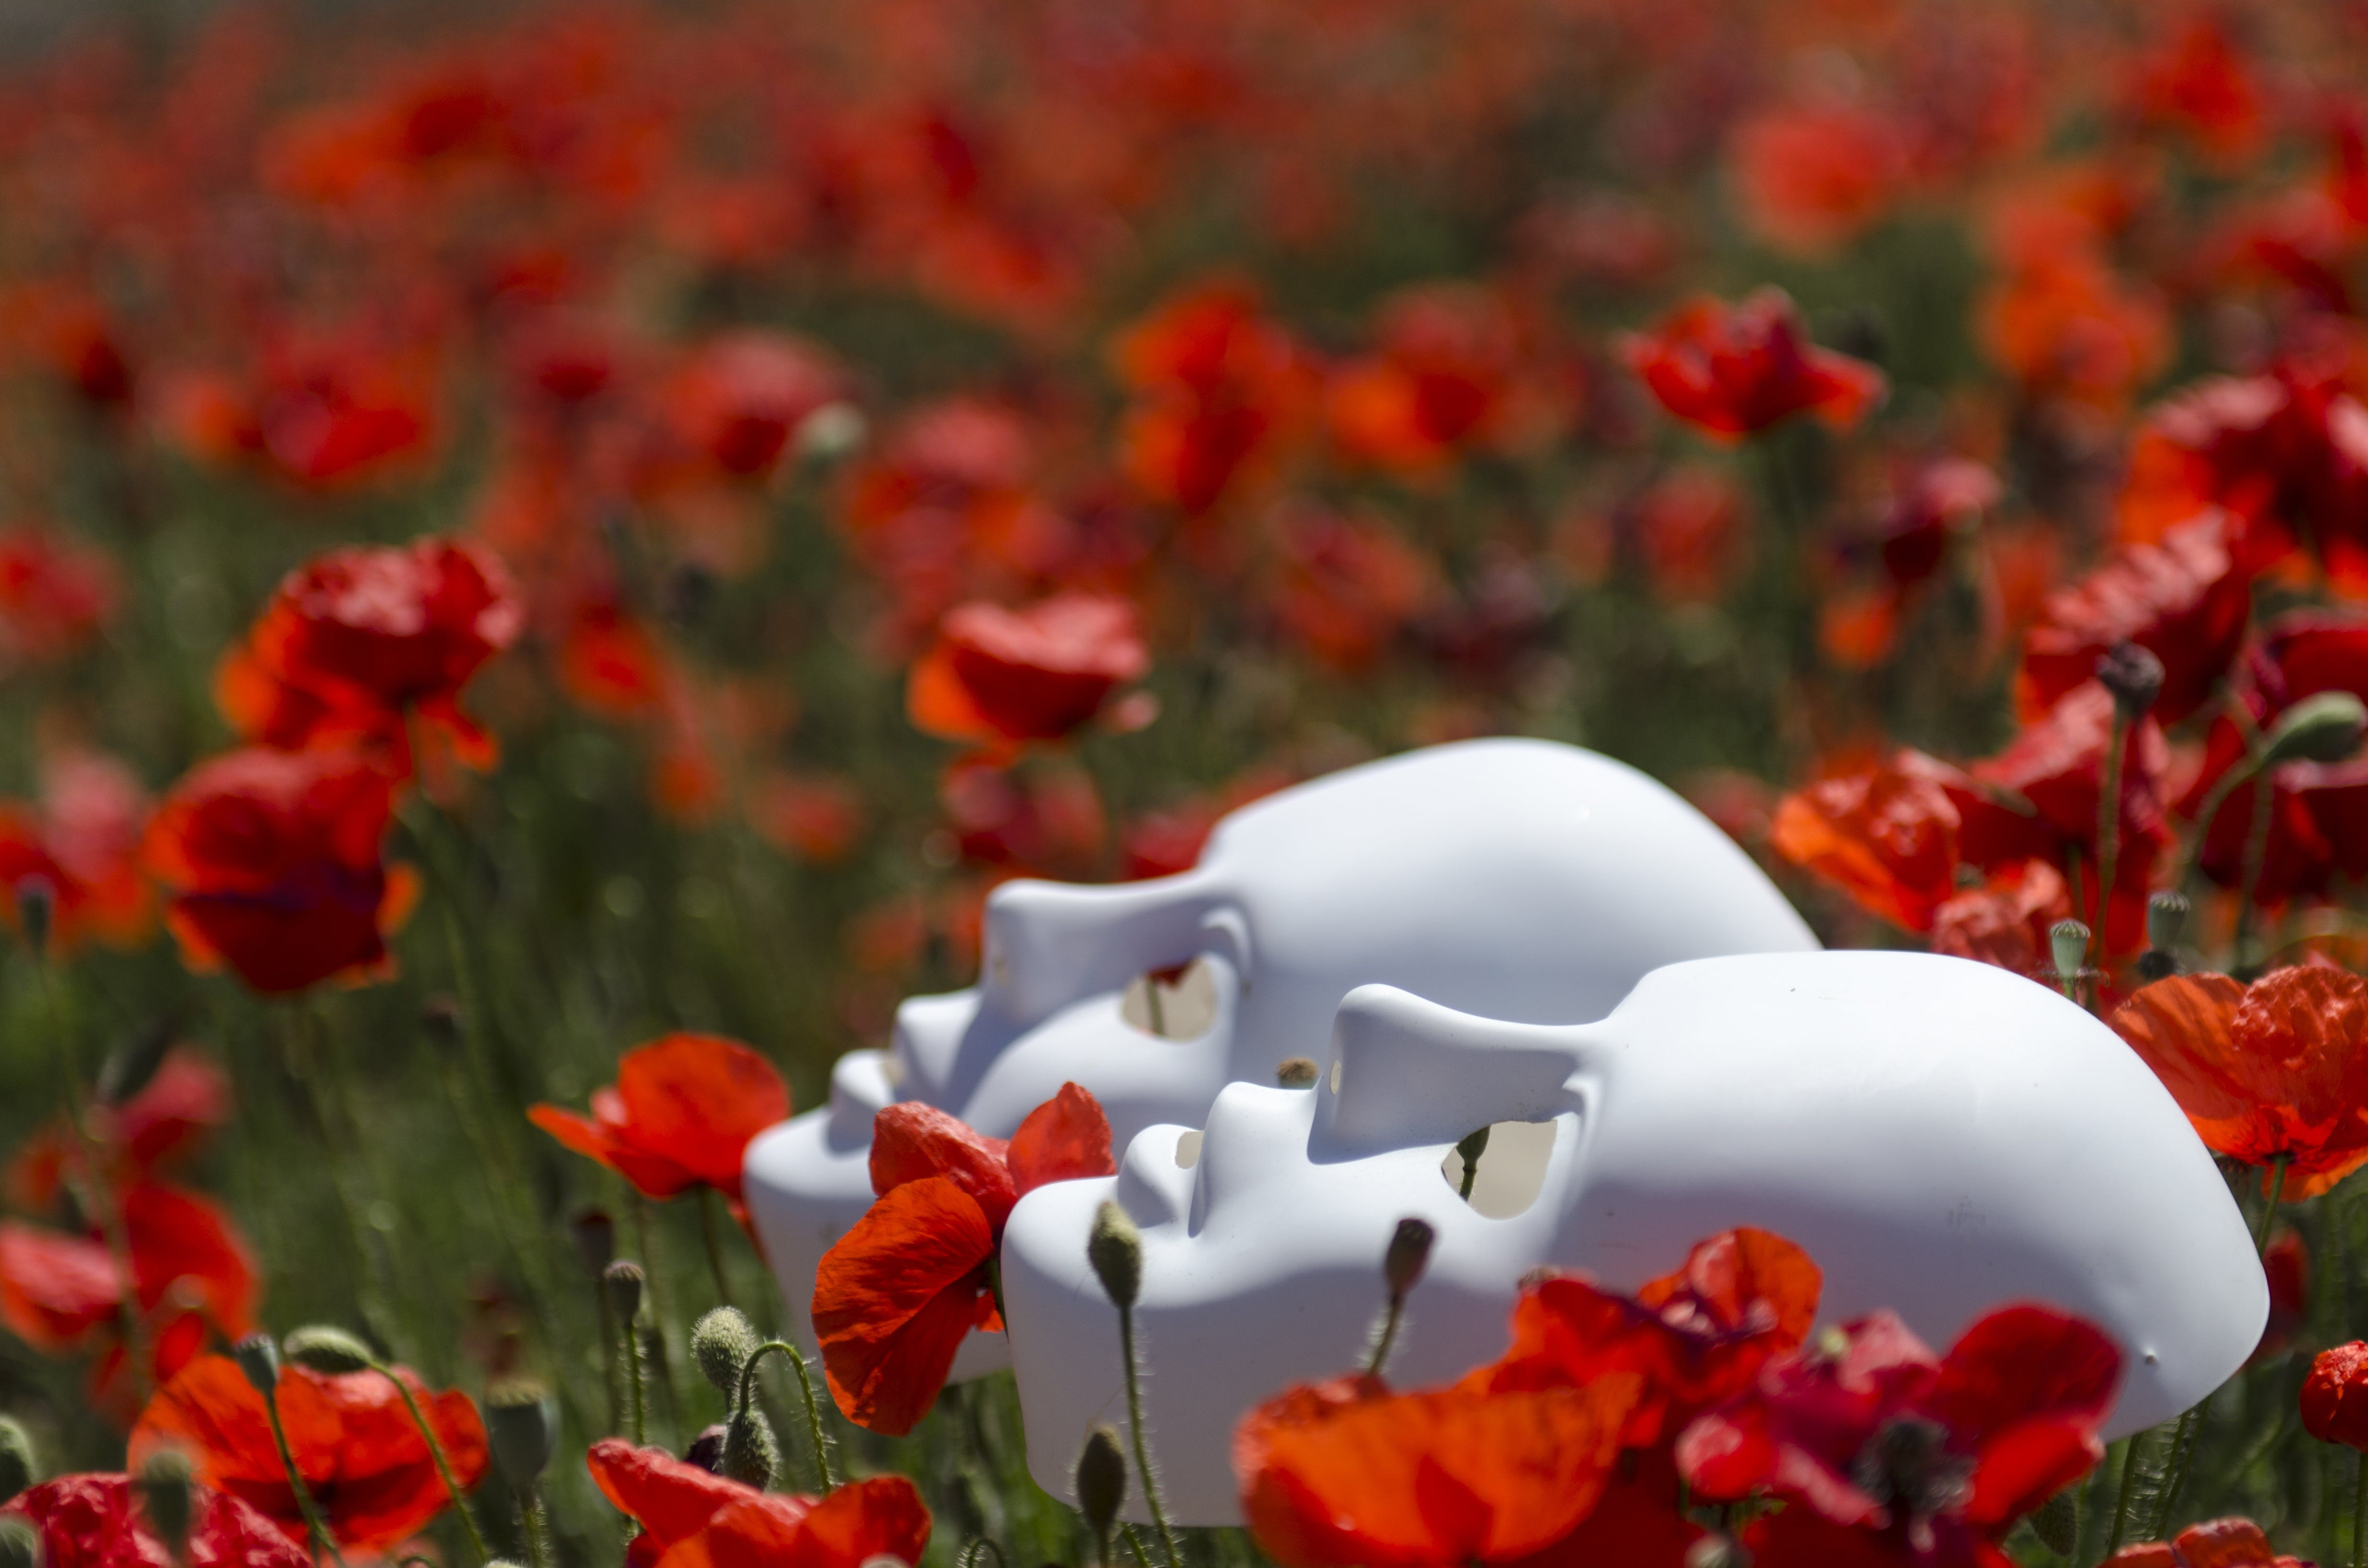 Two White Masks on Red Poppy Flowers